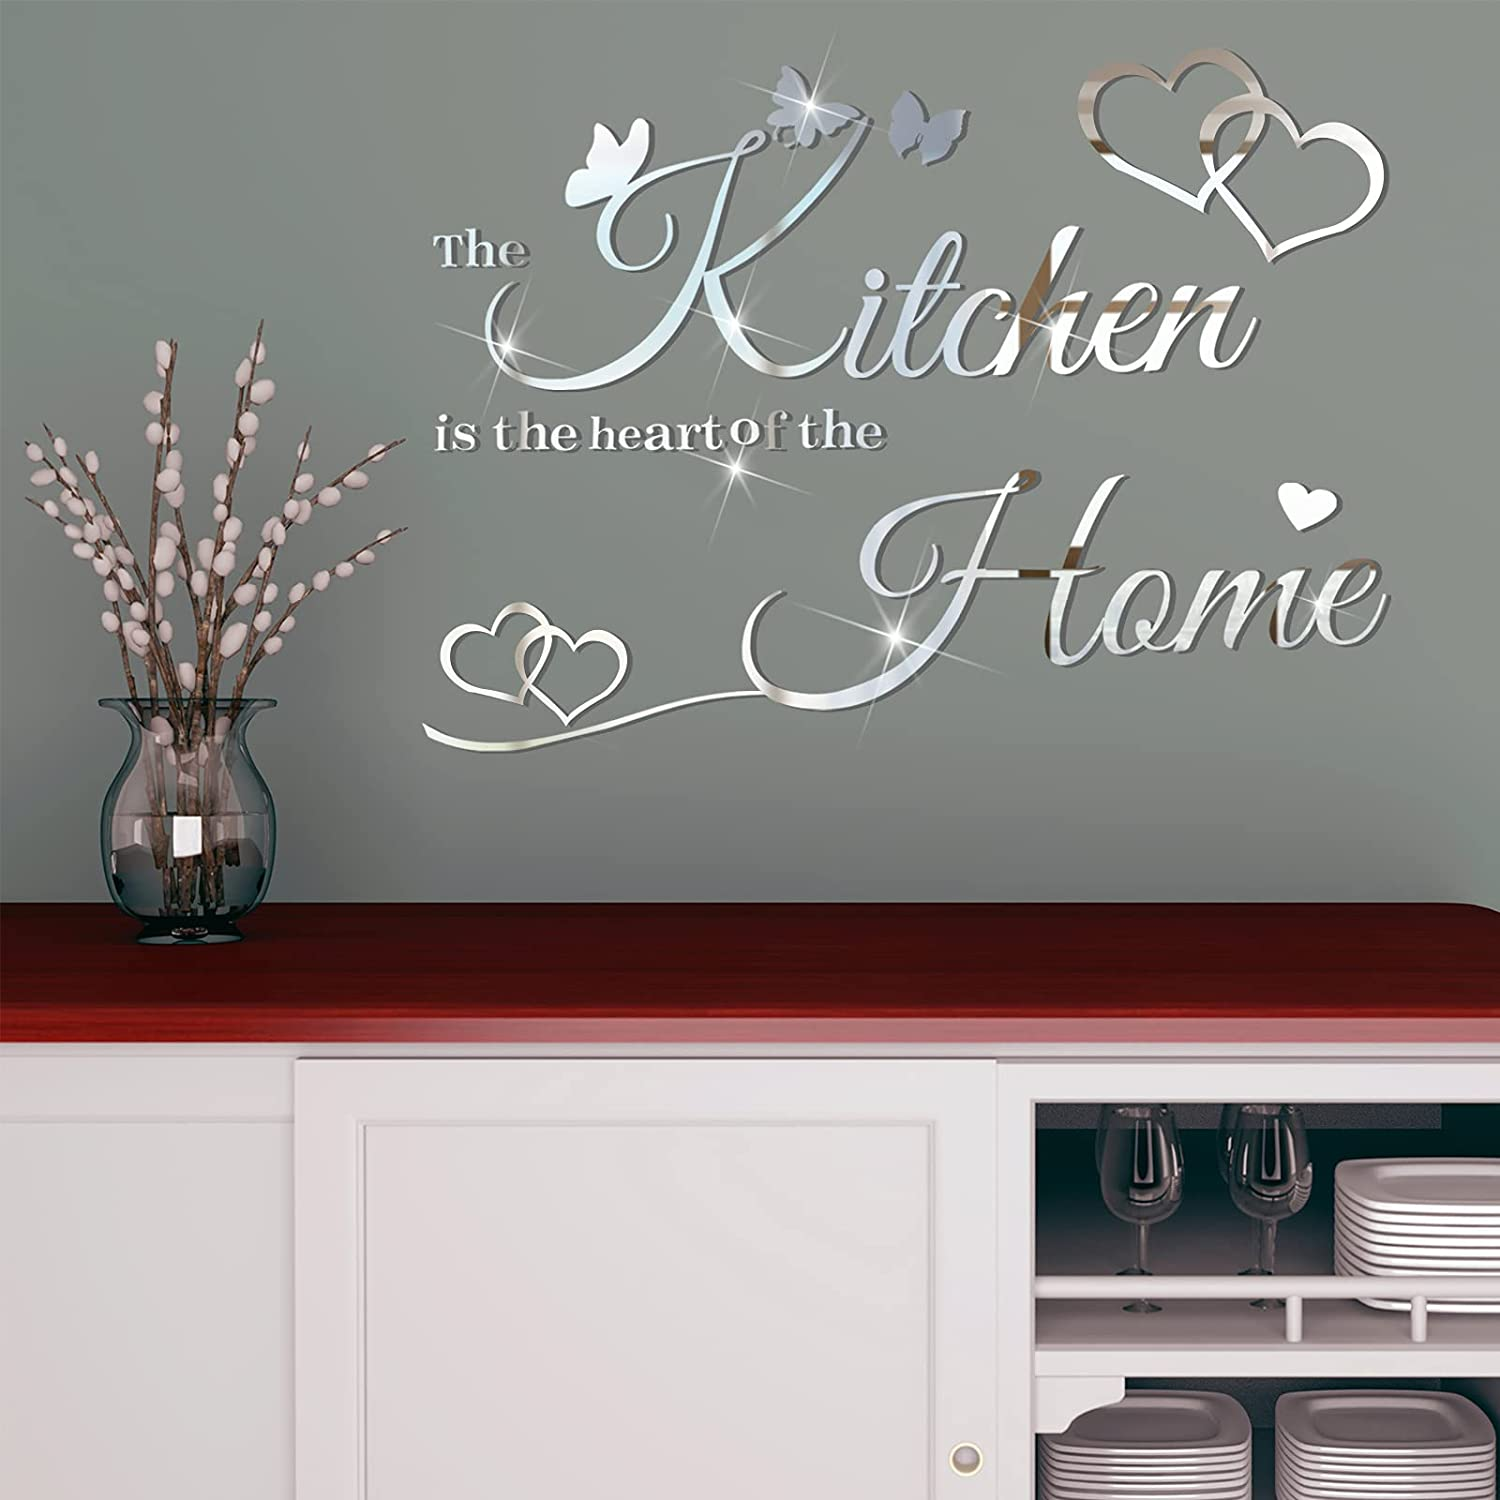 3D Acrylic Mirror Wall Decals Kitchen Butterfly Mirror Stickers Home Letters Decor Heart Quotes Wall Stickers Removable Wall Decals Motivational Wall Decoration for Kitchen Home Dorm (Silver)